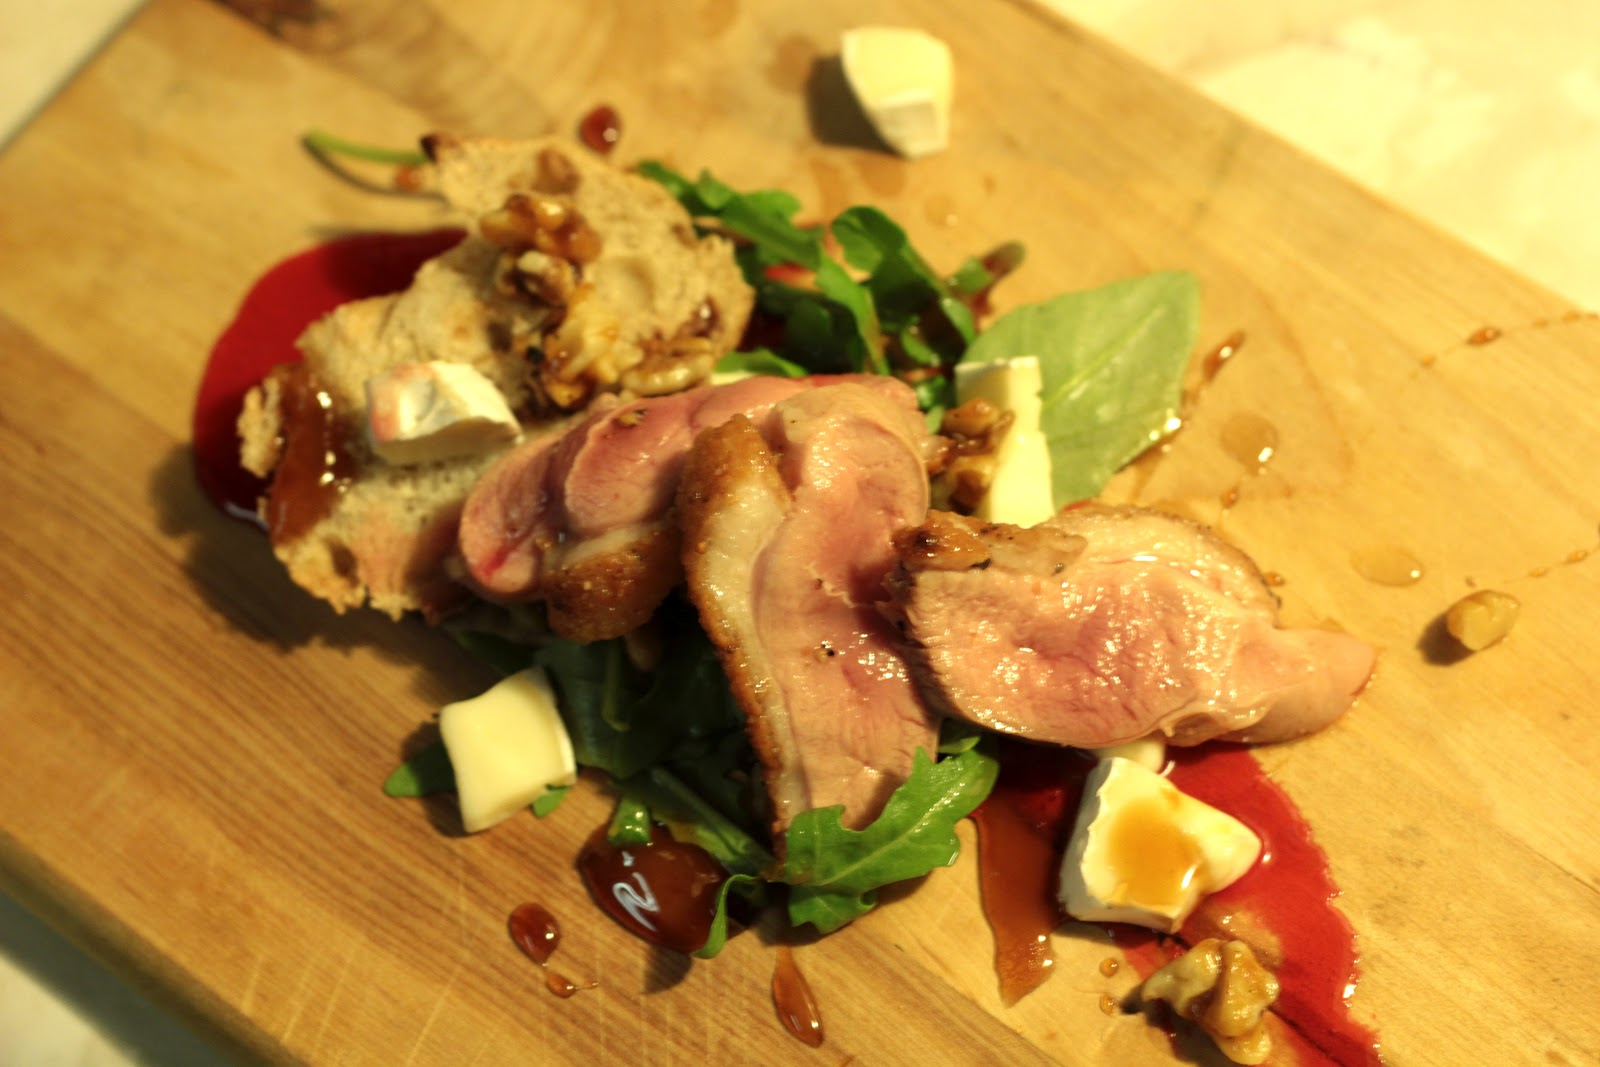 Candied breast of duck recipe